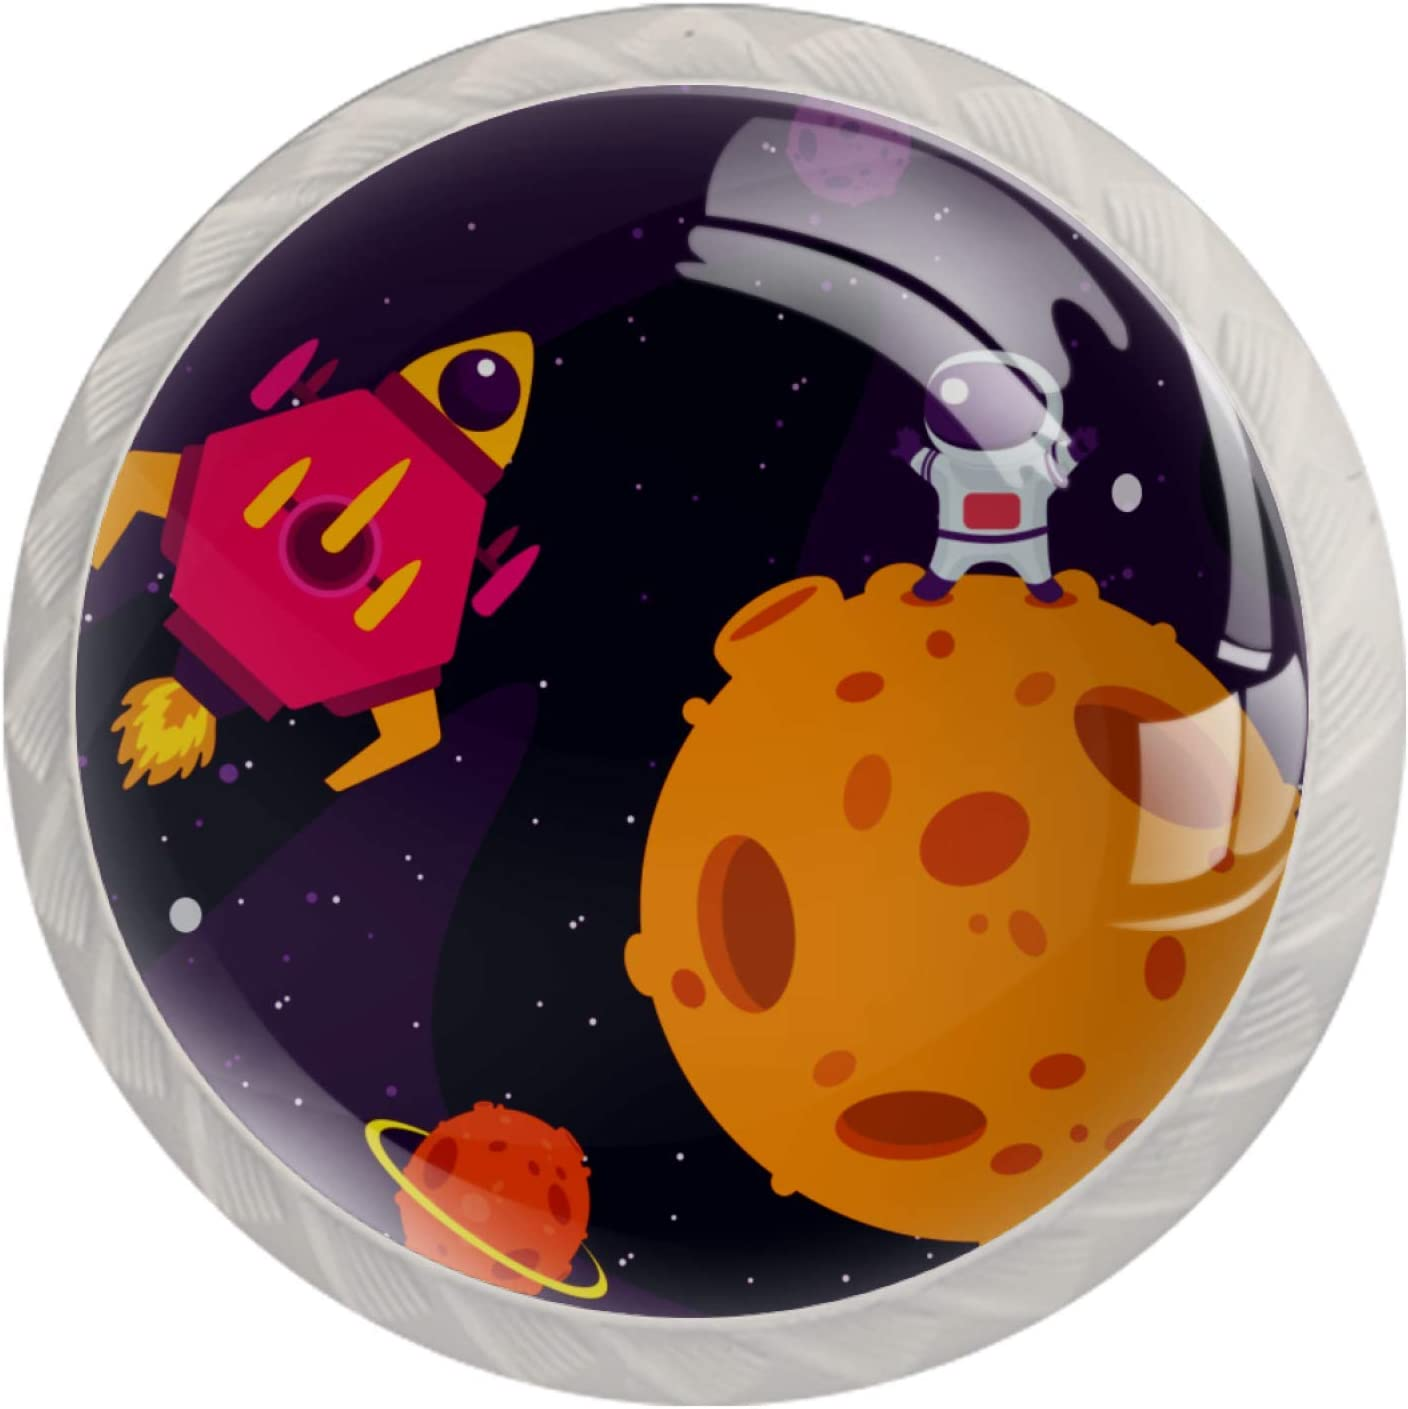 Kids Drawer Knobs Purchase Pulls Cartoon Max 61% OFF Rocket Handles Nursery for Space